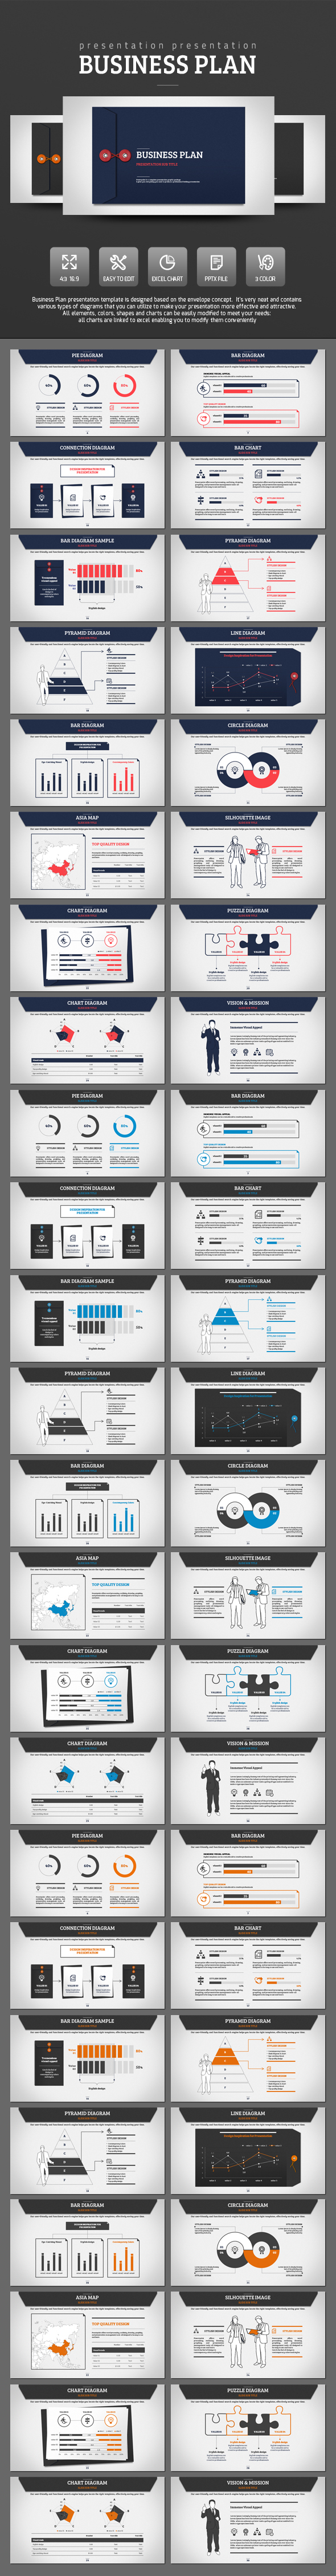 Business Plan - PowerPoint Templates Presentation Templates